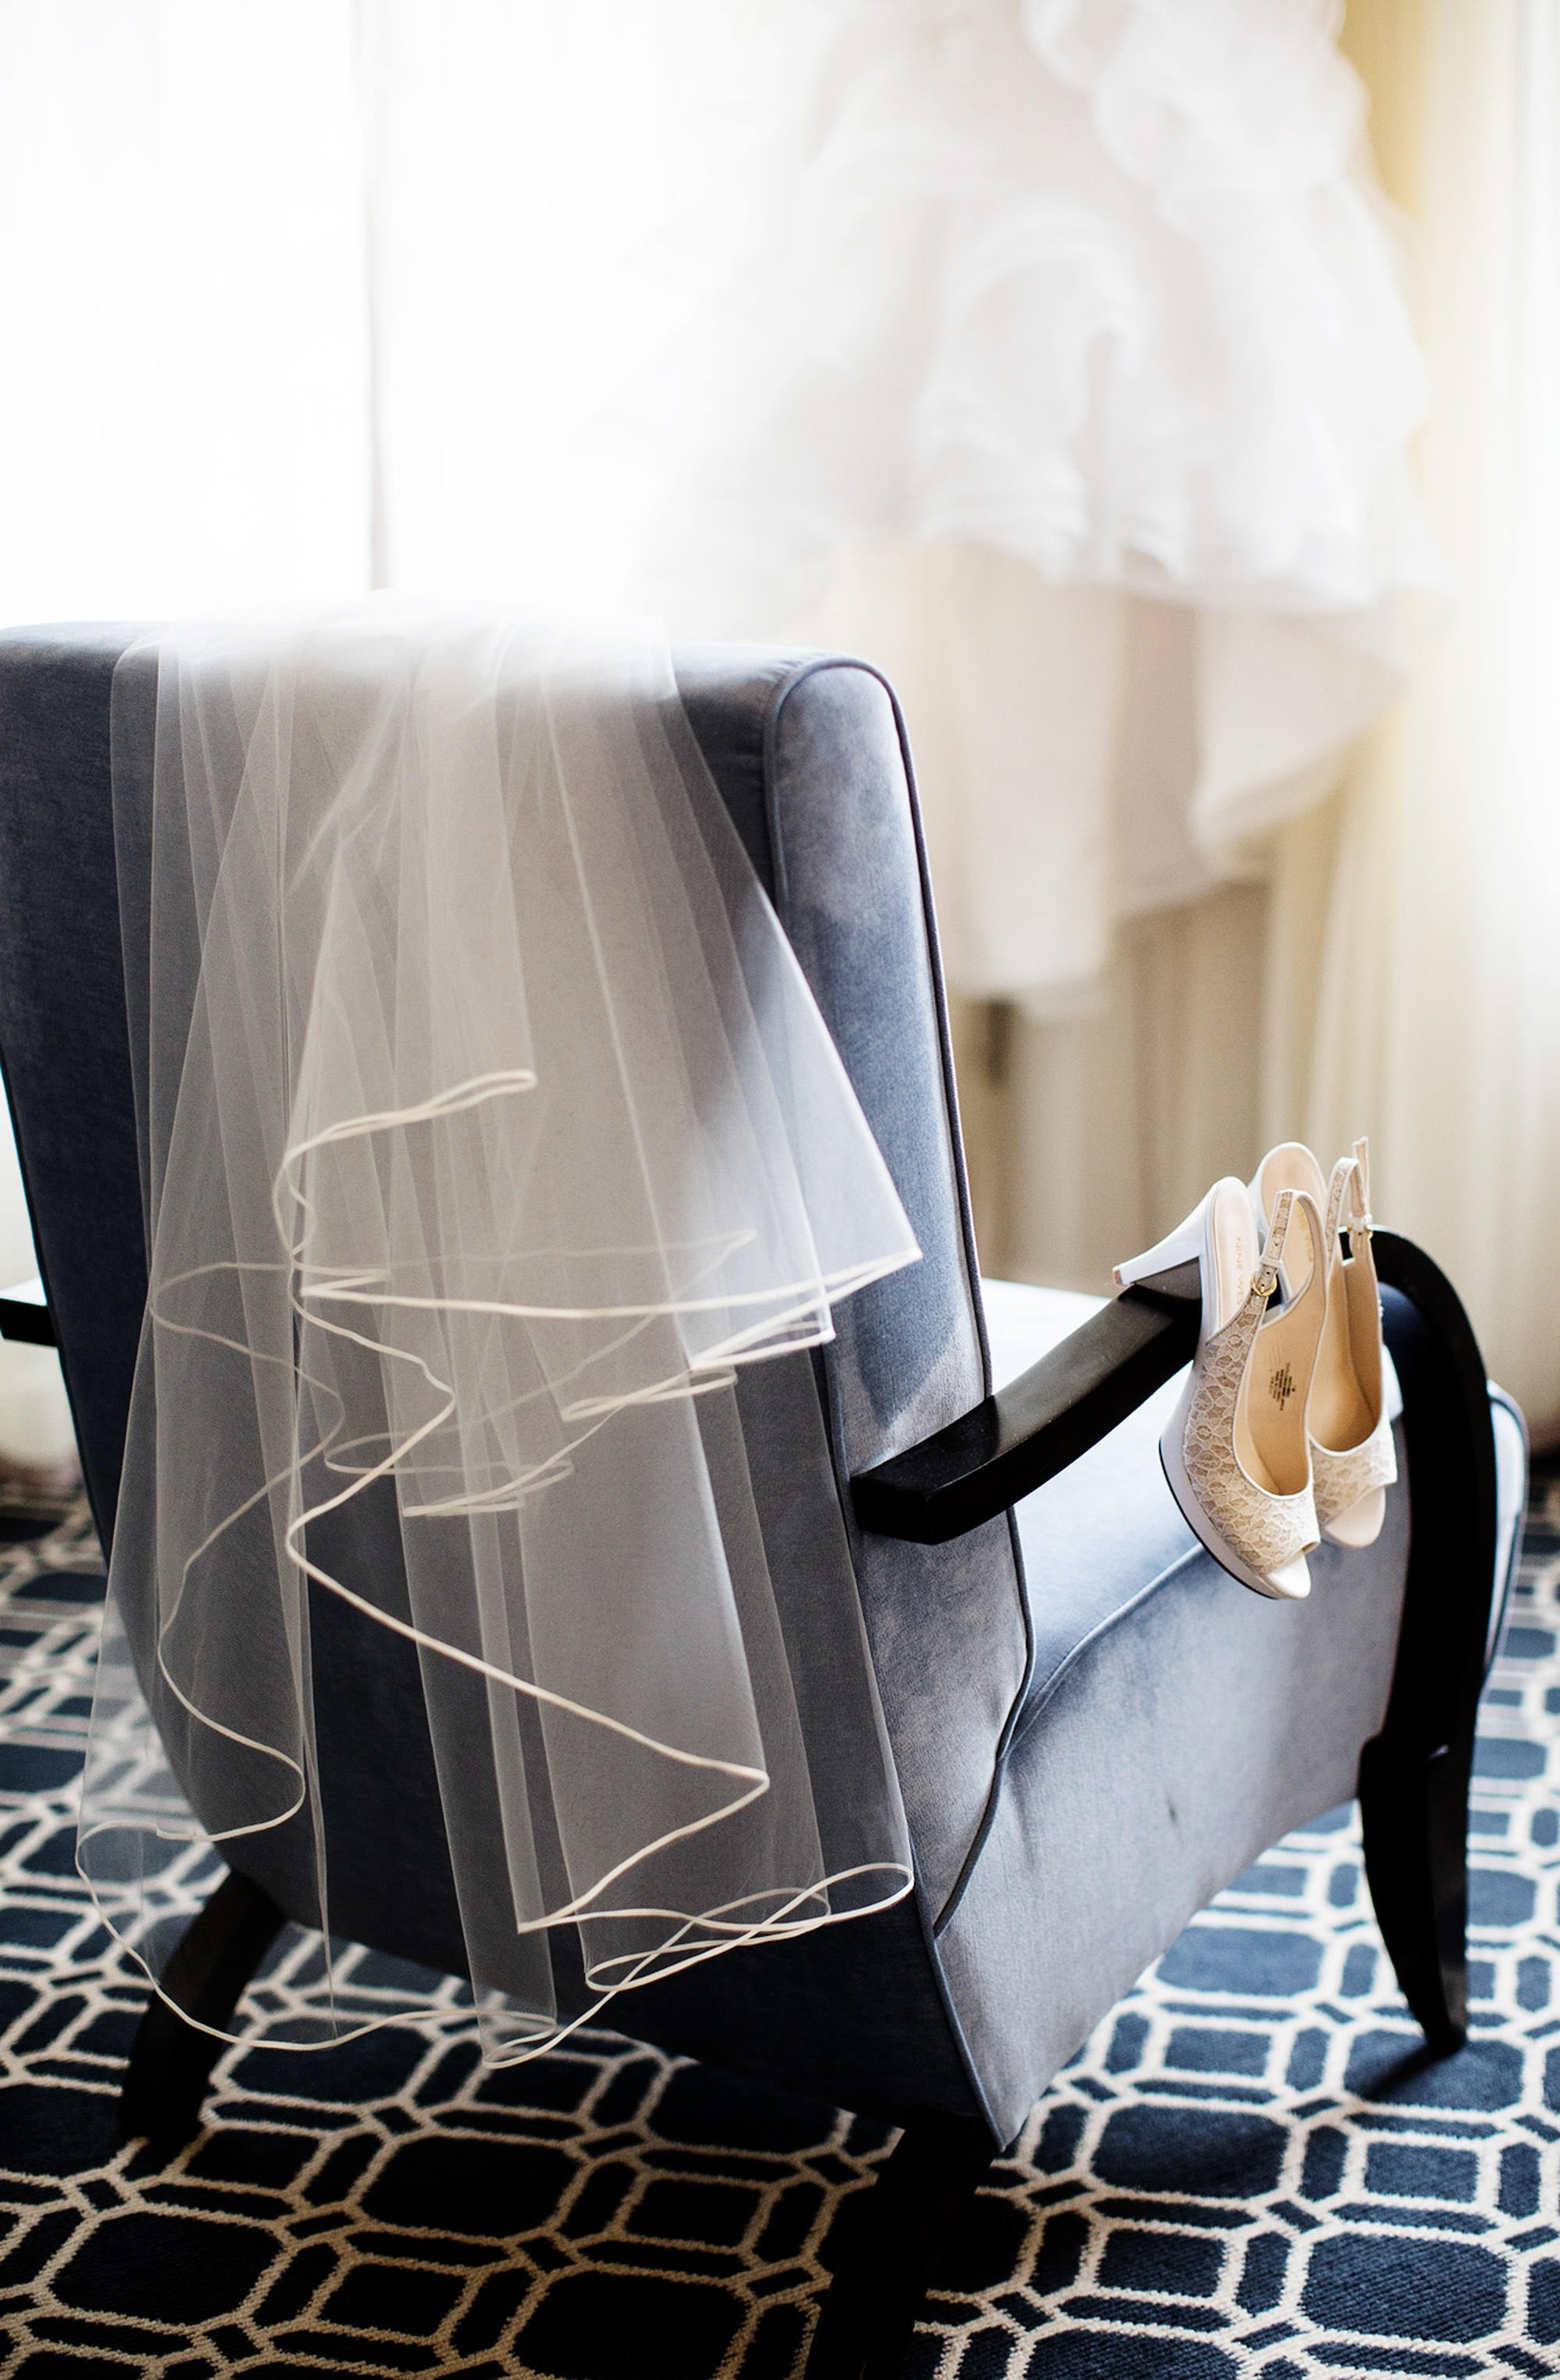 A detail of the bride's veil and shoes at the Sofitel in Washington, DC prior to the NMWA DC wedding.